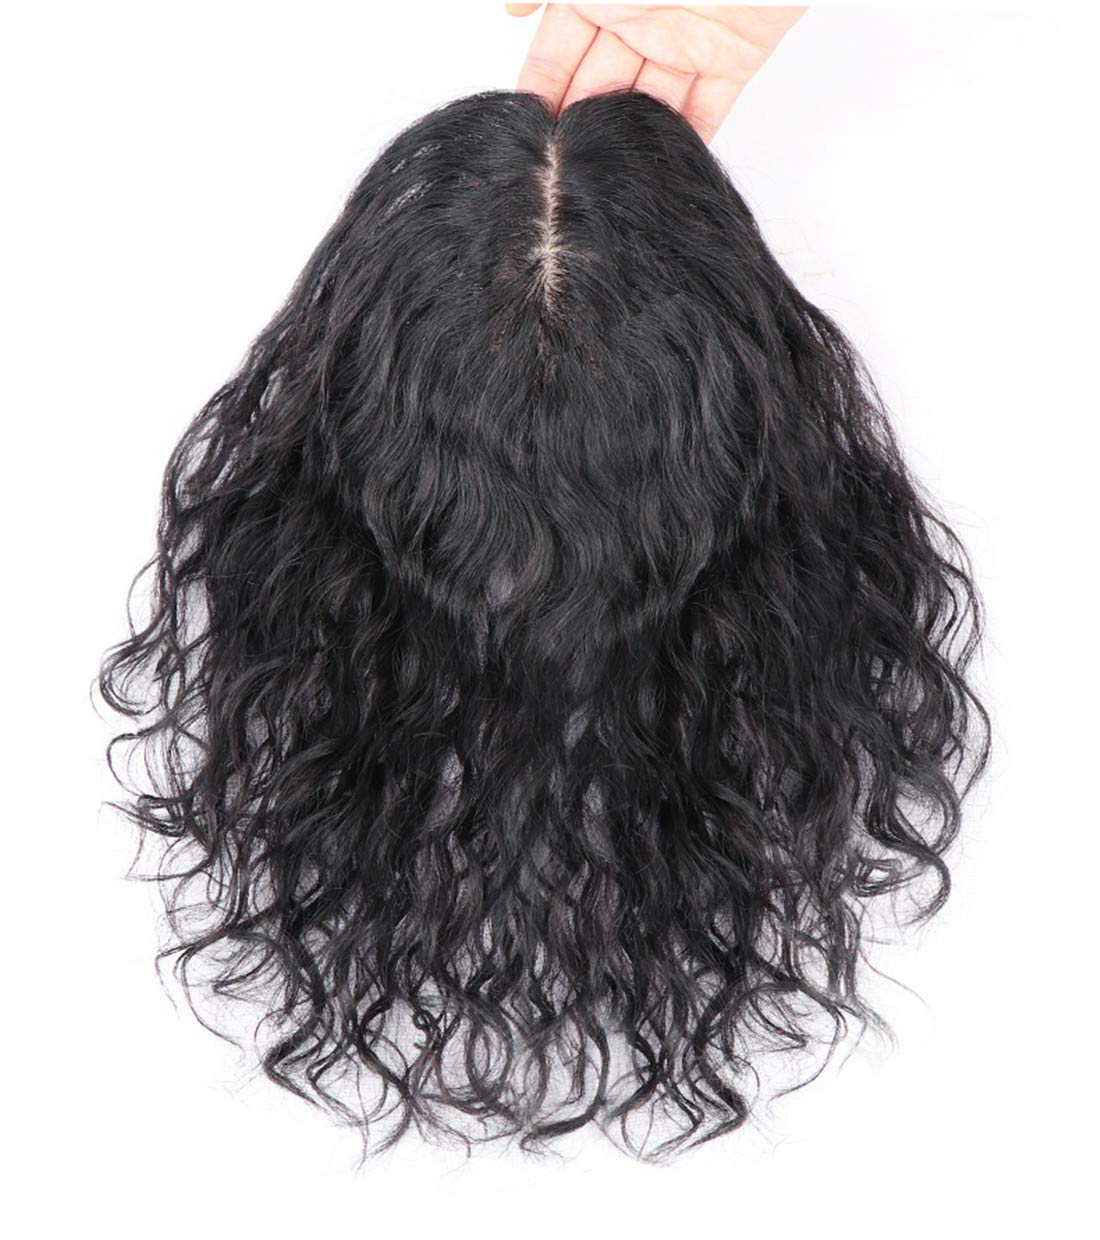 "Curly Human Hair Topper Hair Thicken Hairpiece for Women with Thin Hair on Top, 5""x5.5"" Silk Base 8"